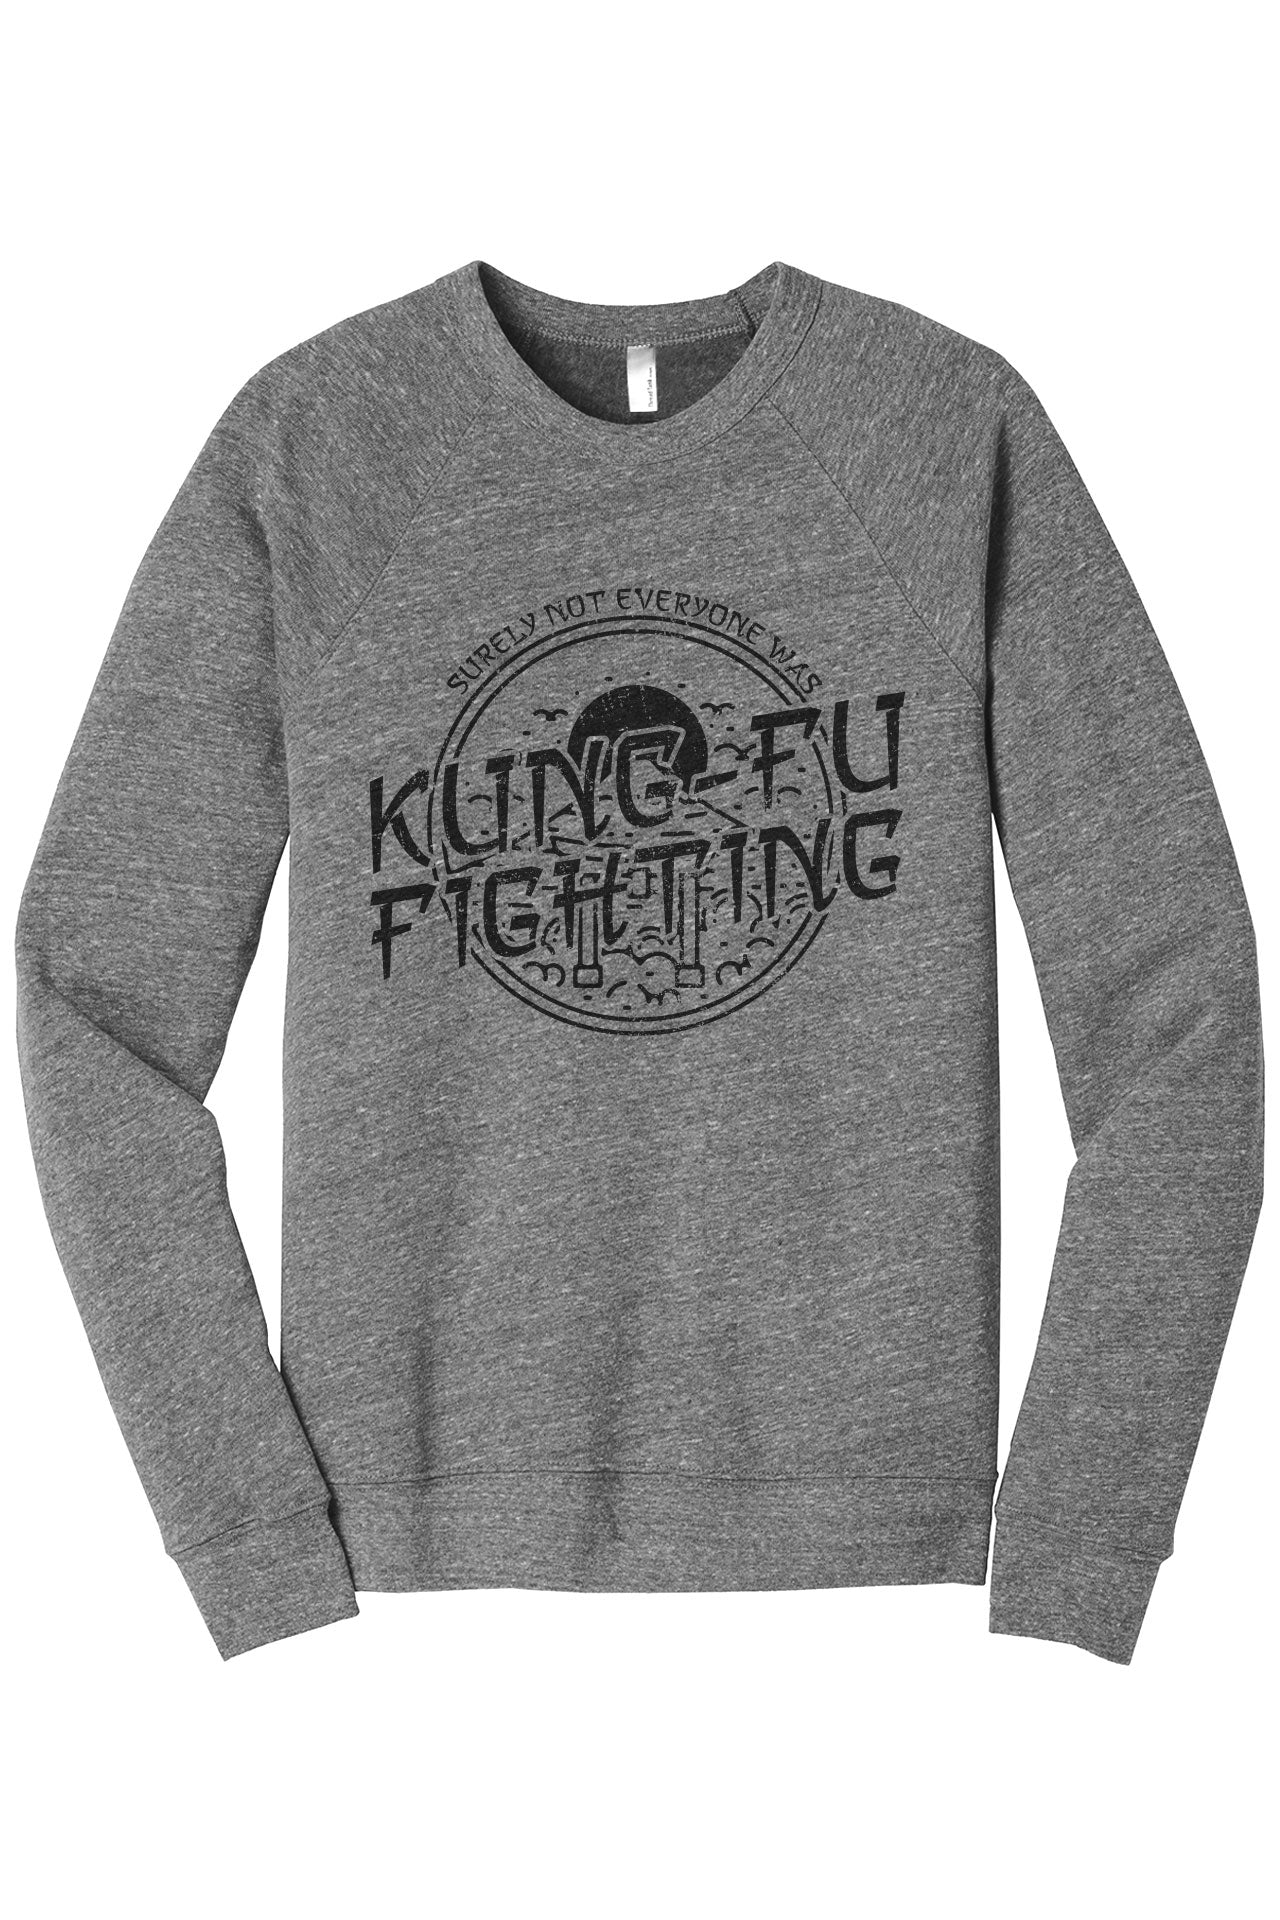 Surely Not Everyone Was Kung Fu Fighting Cozy Unisex Fleece Longsleeves Sweater Heather Grey FRONT